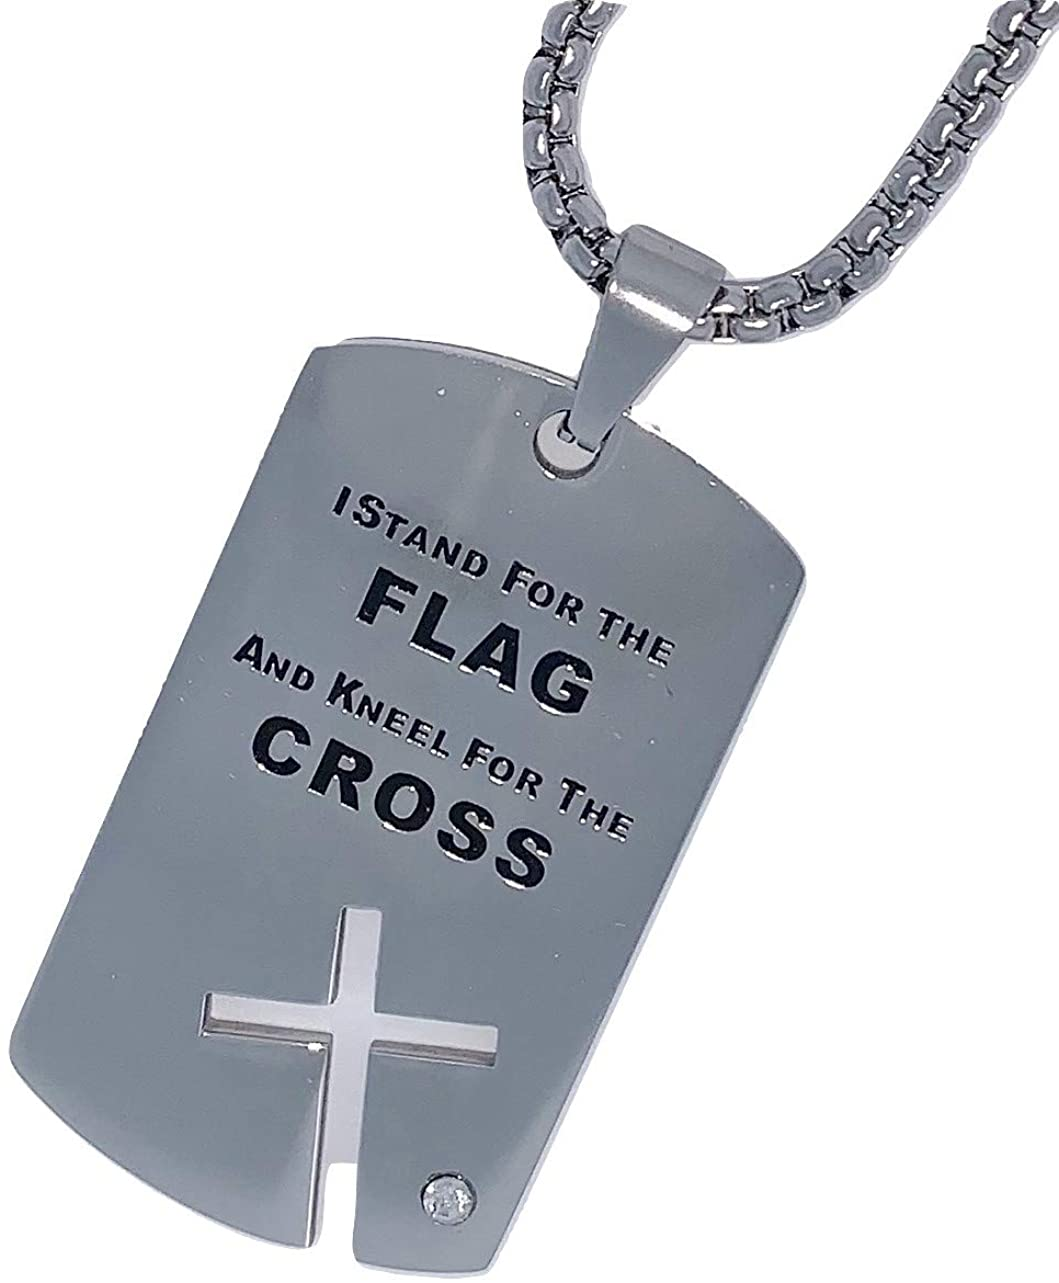 Fun Collections I Stand for The Flag and Kneel for The Cross Stainless Steel Dog Tag Necklace Jewelry